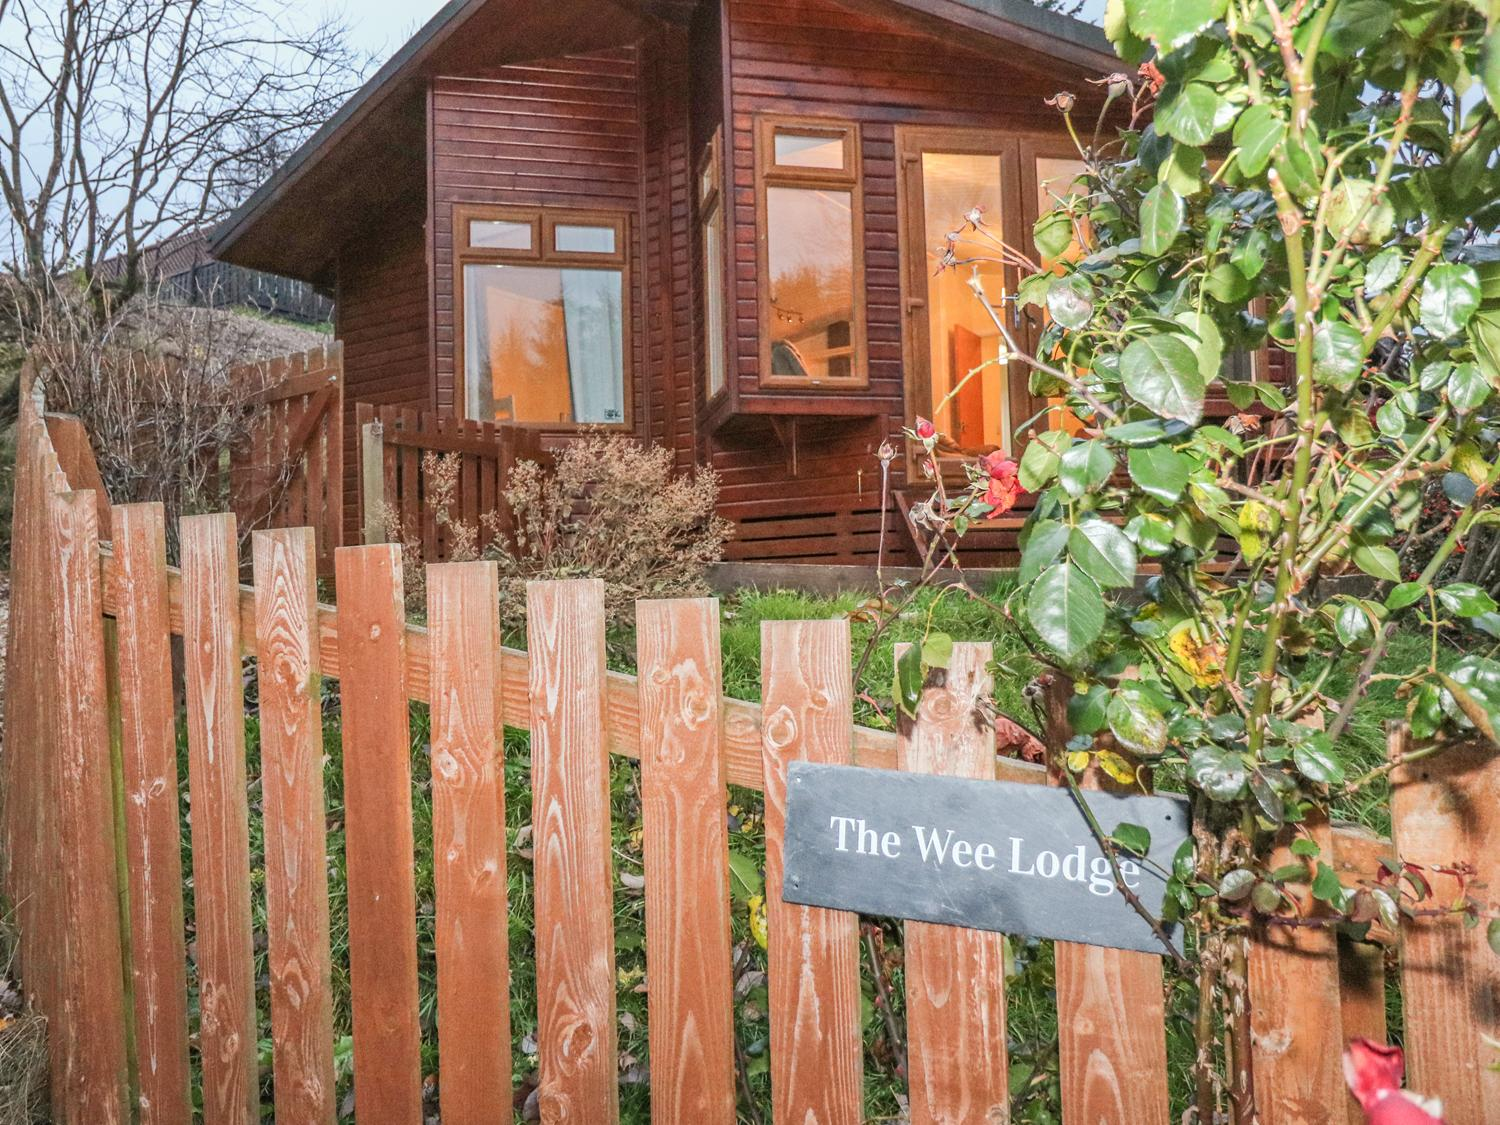 The Wee Lodge